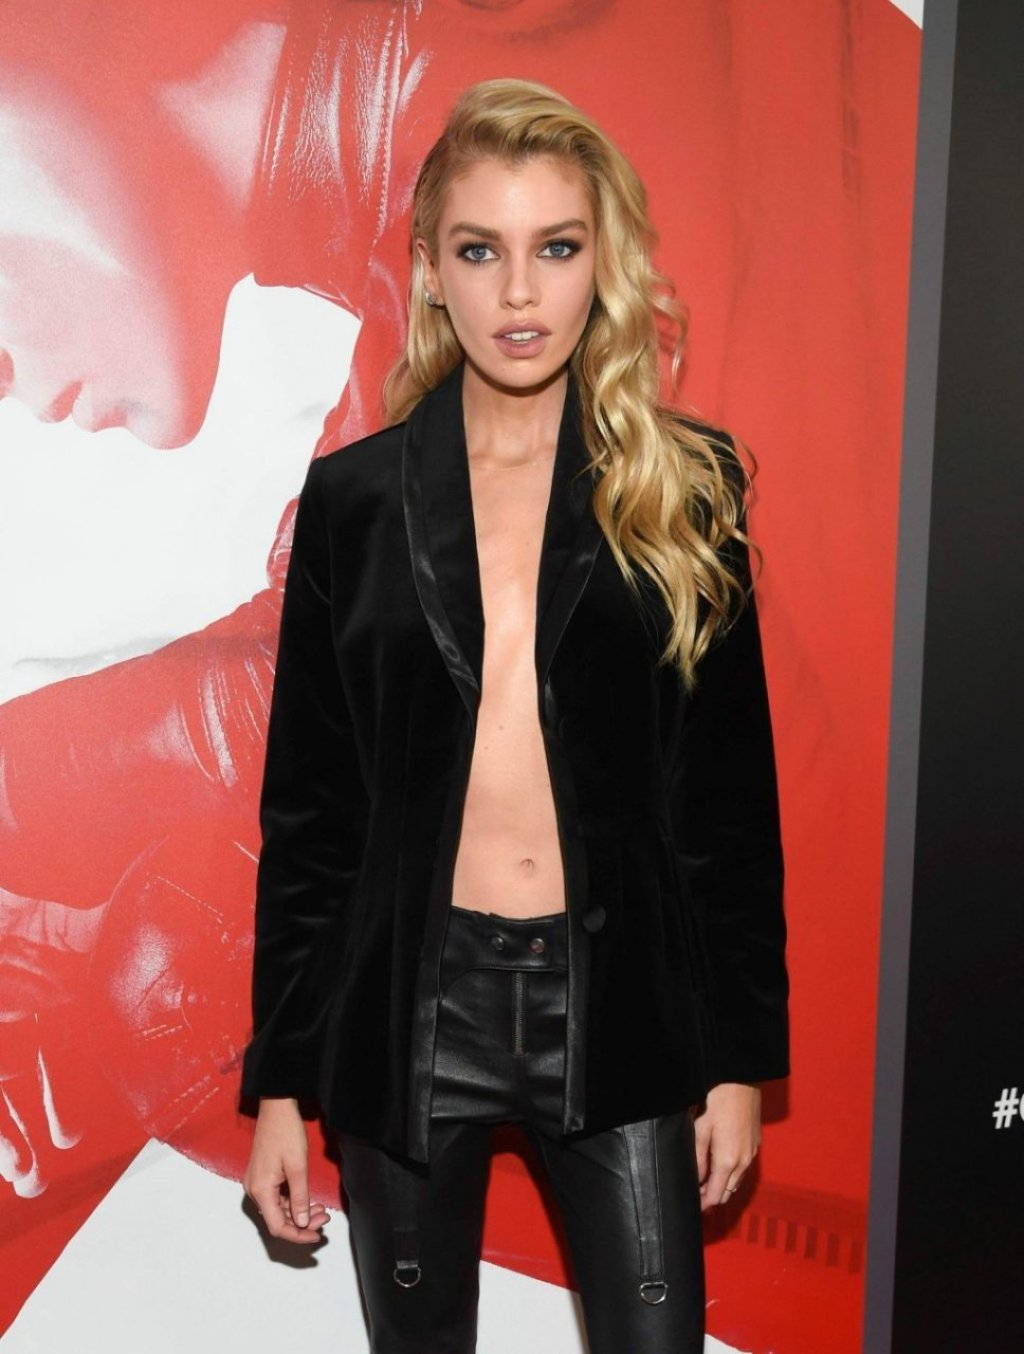 Stella Maxwell Braless (54 Photos)